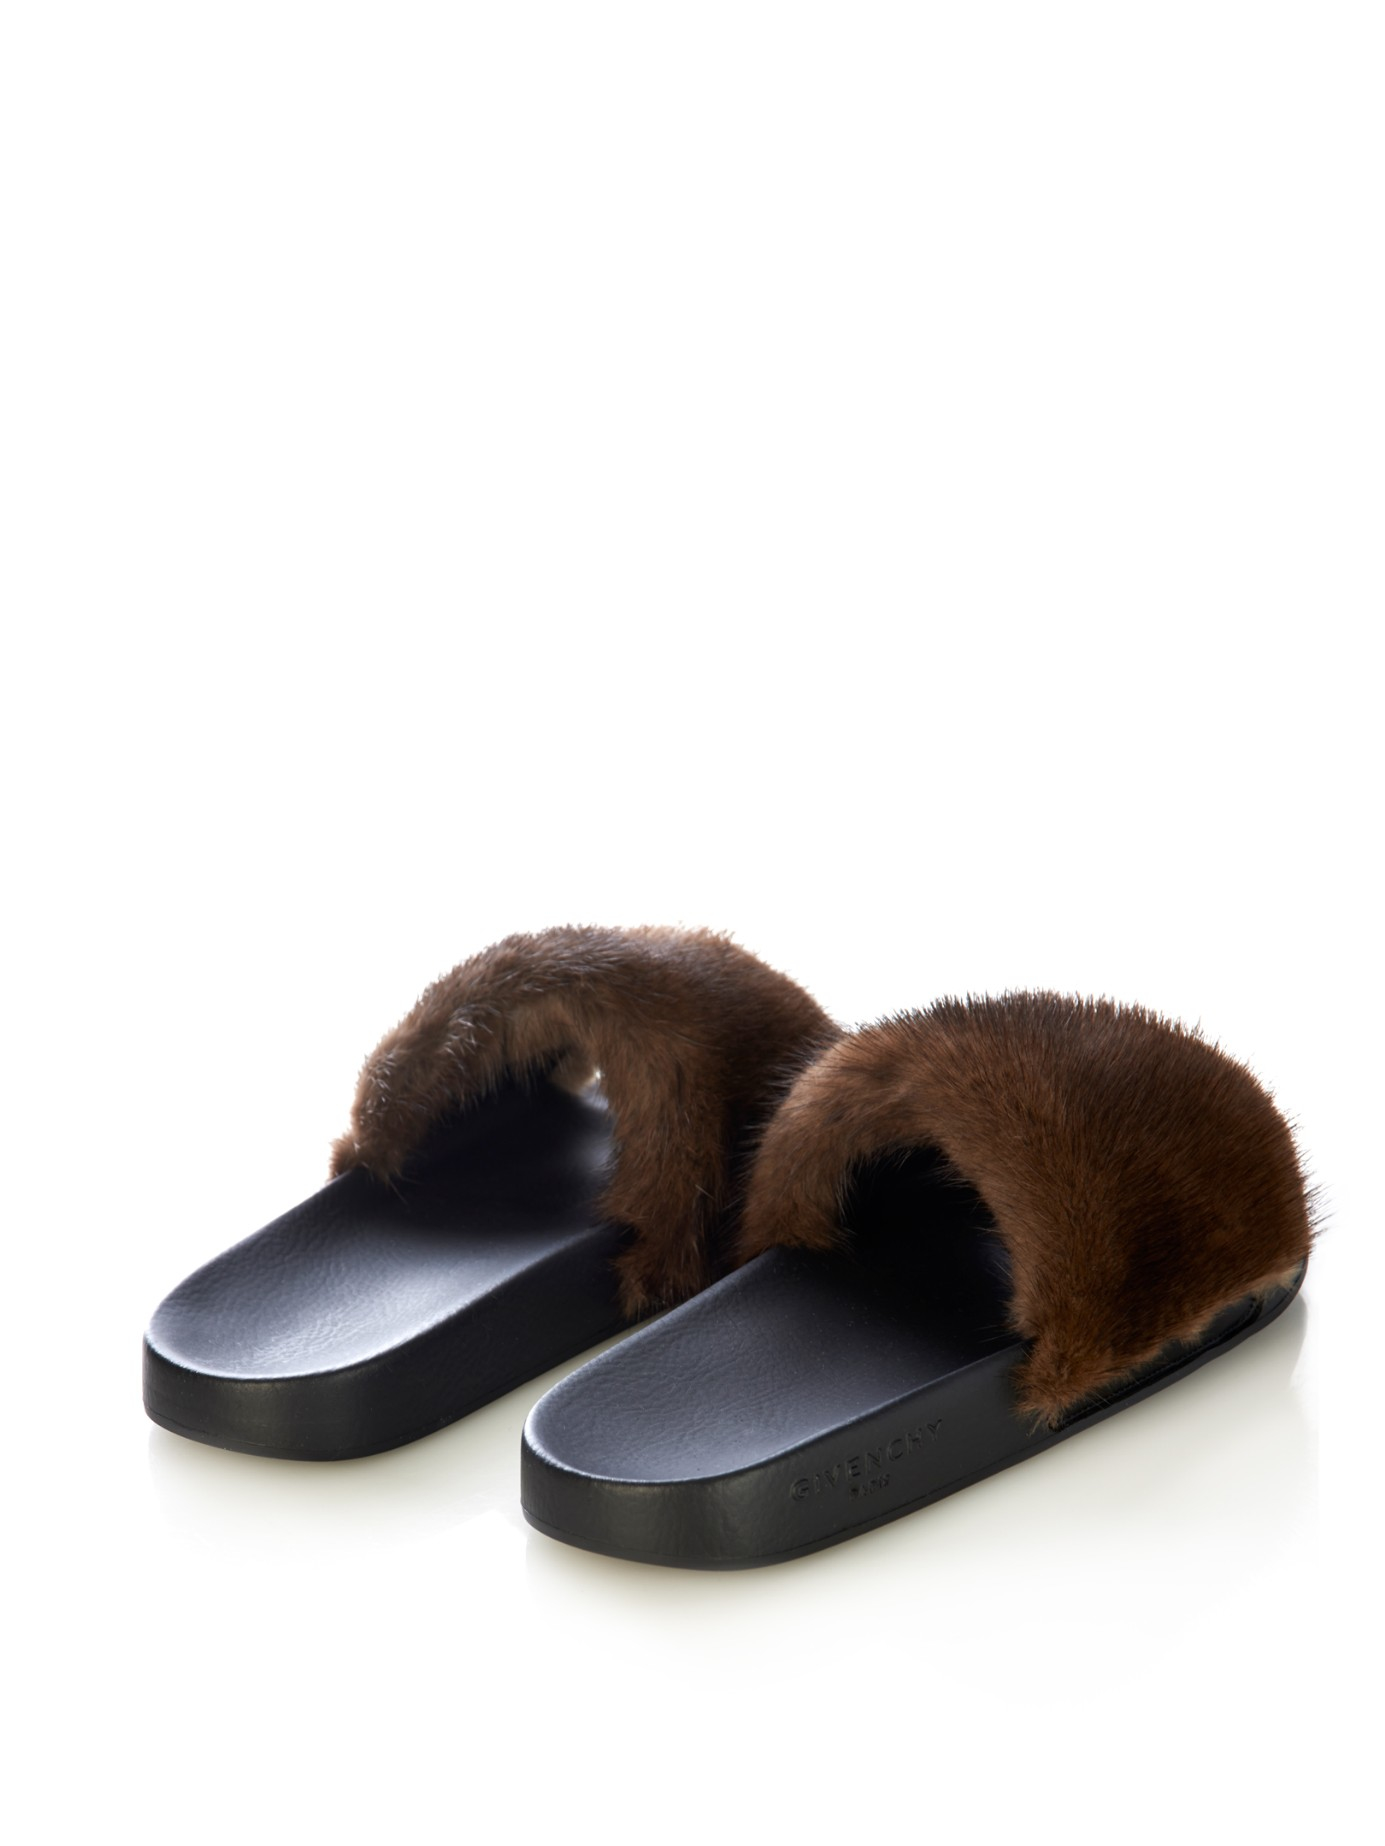 Lyst - Givenchy Fur Sandals in Black fe5322619